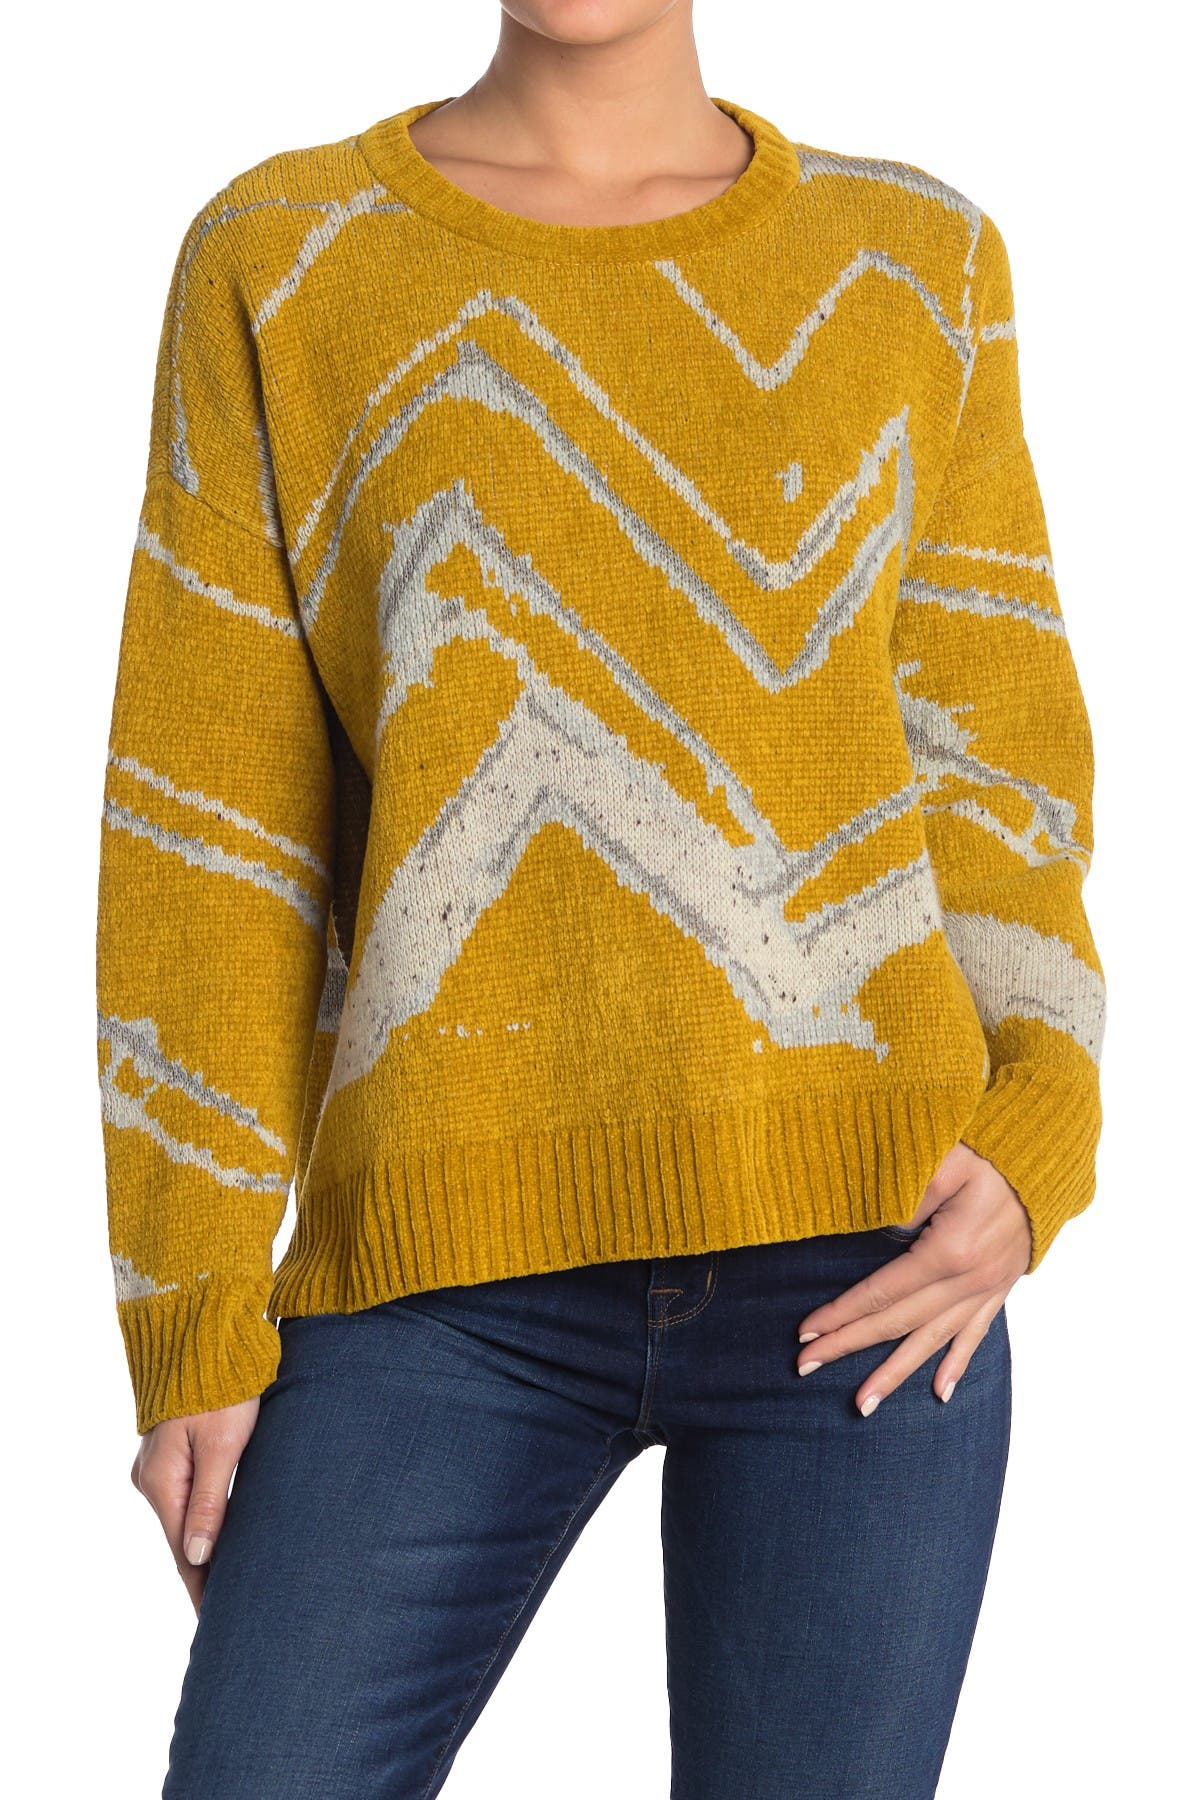 Image of Billy Reid Mountain Jacquard Sweater